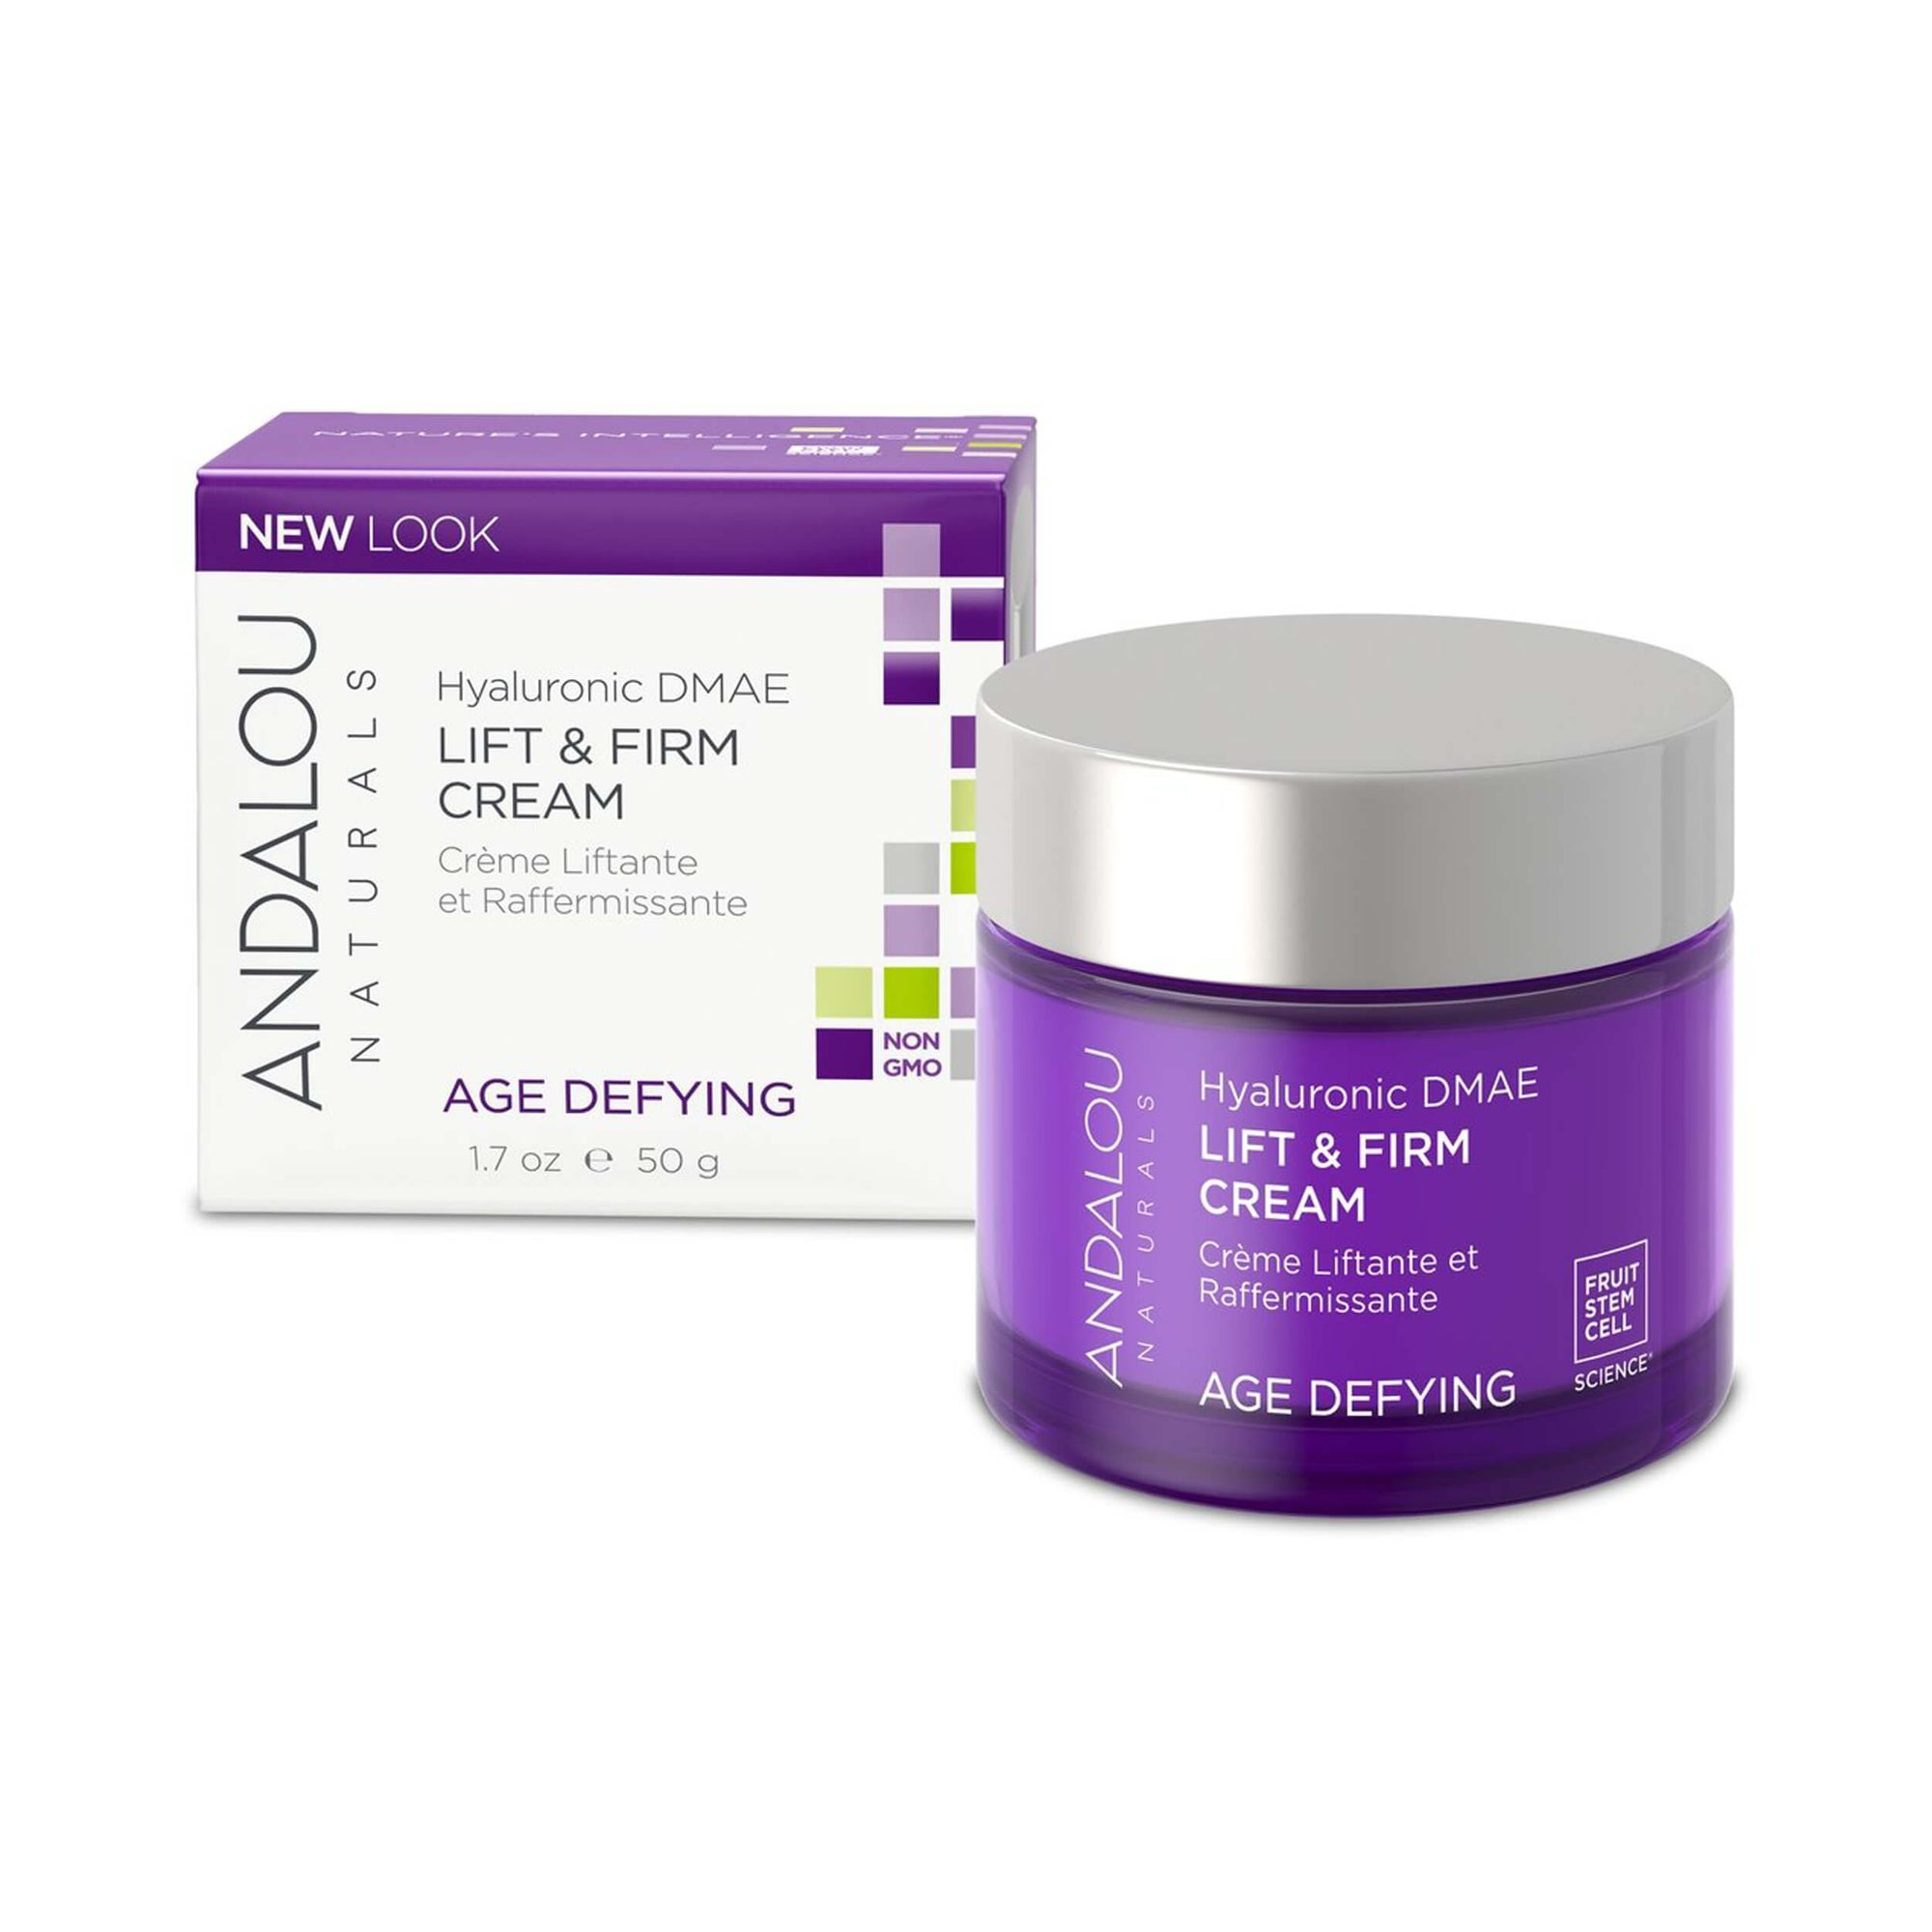 ndalou Naturals Age Defying Hyaluronic DMAE Lift & Firm Cream 50g